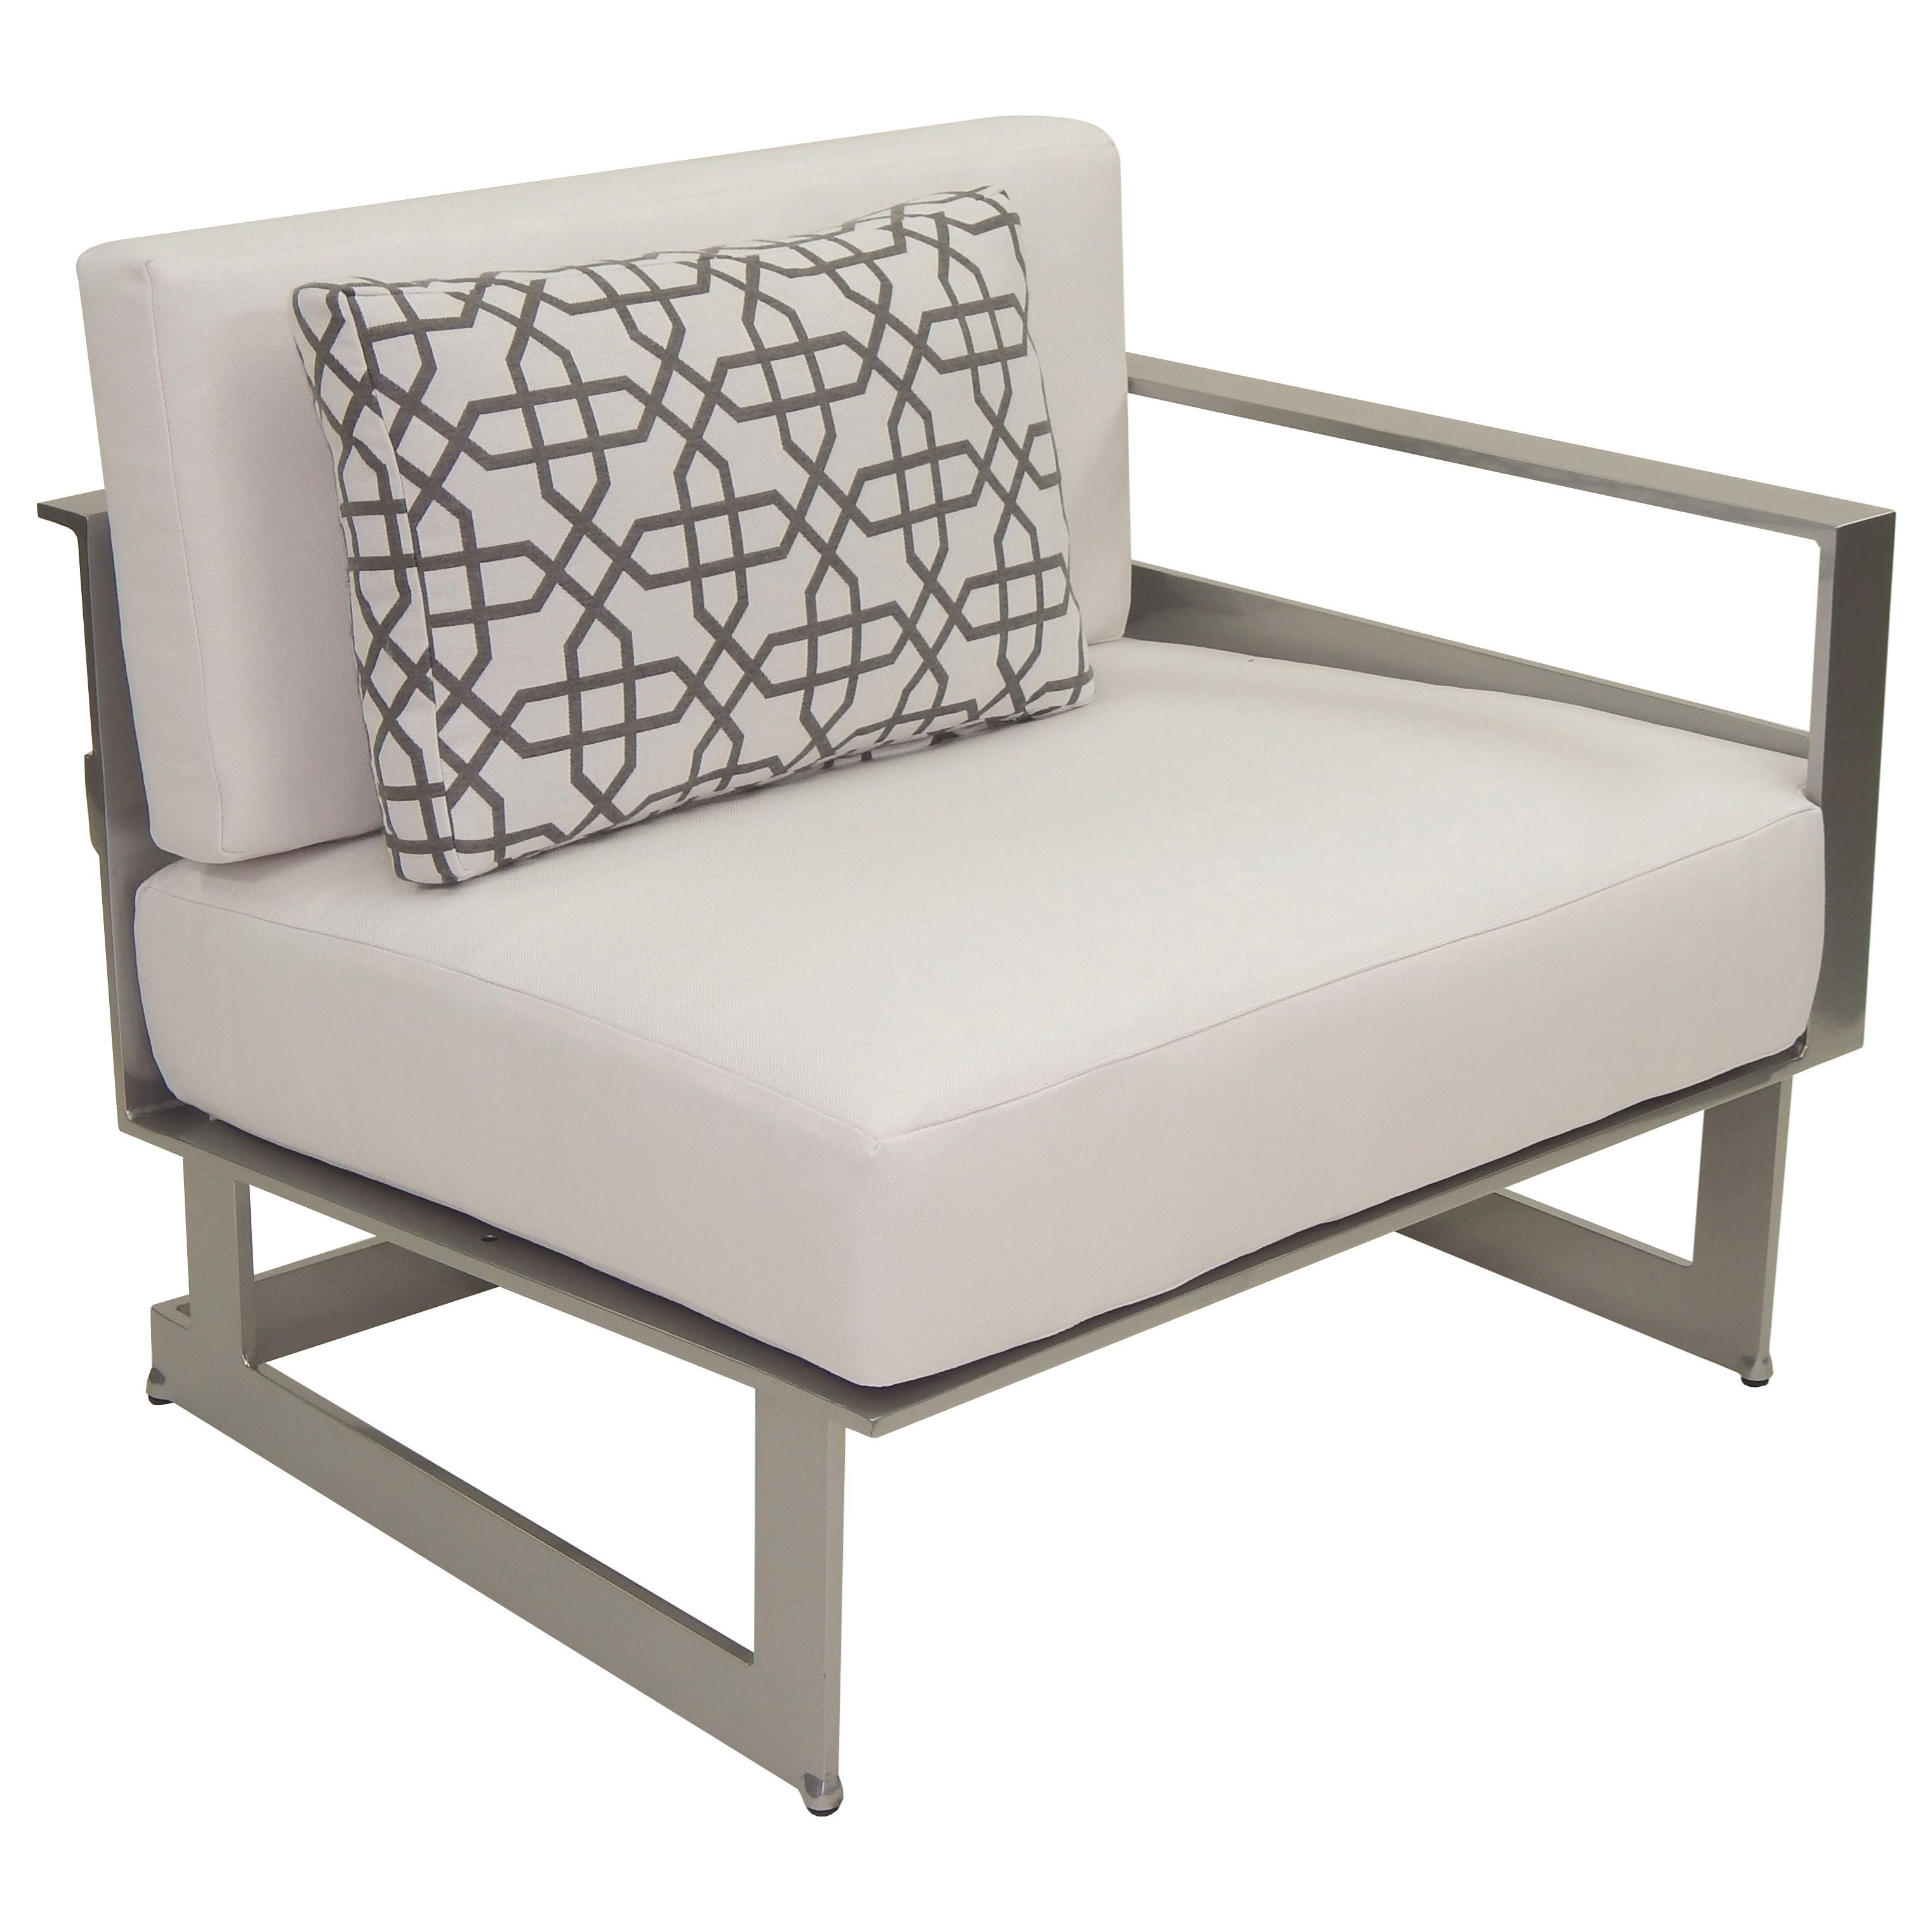 Eclipse Sectional Left Arm Lounge Unit w/ One Pillow by Castelle by Pride Family Brands at Baer's Furniture